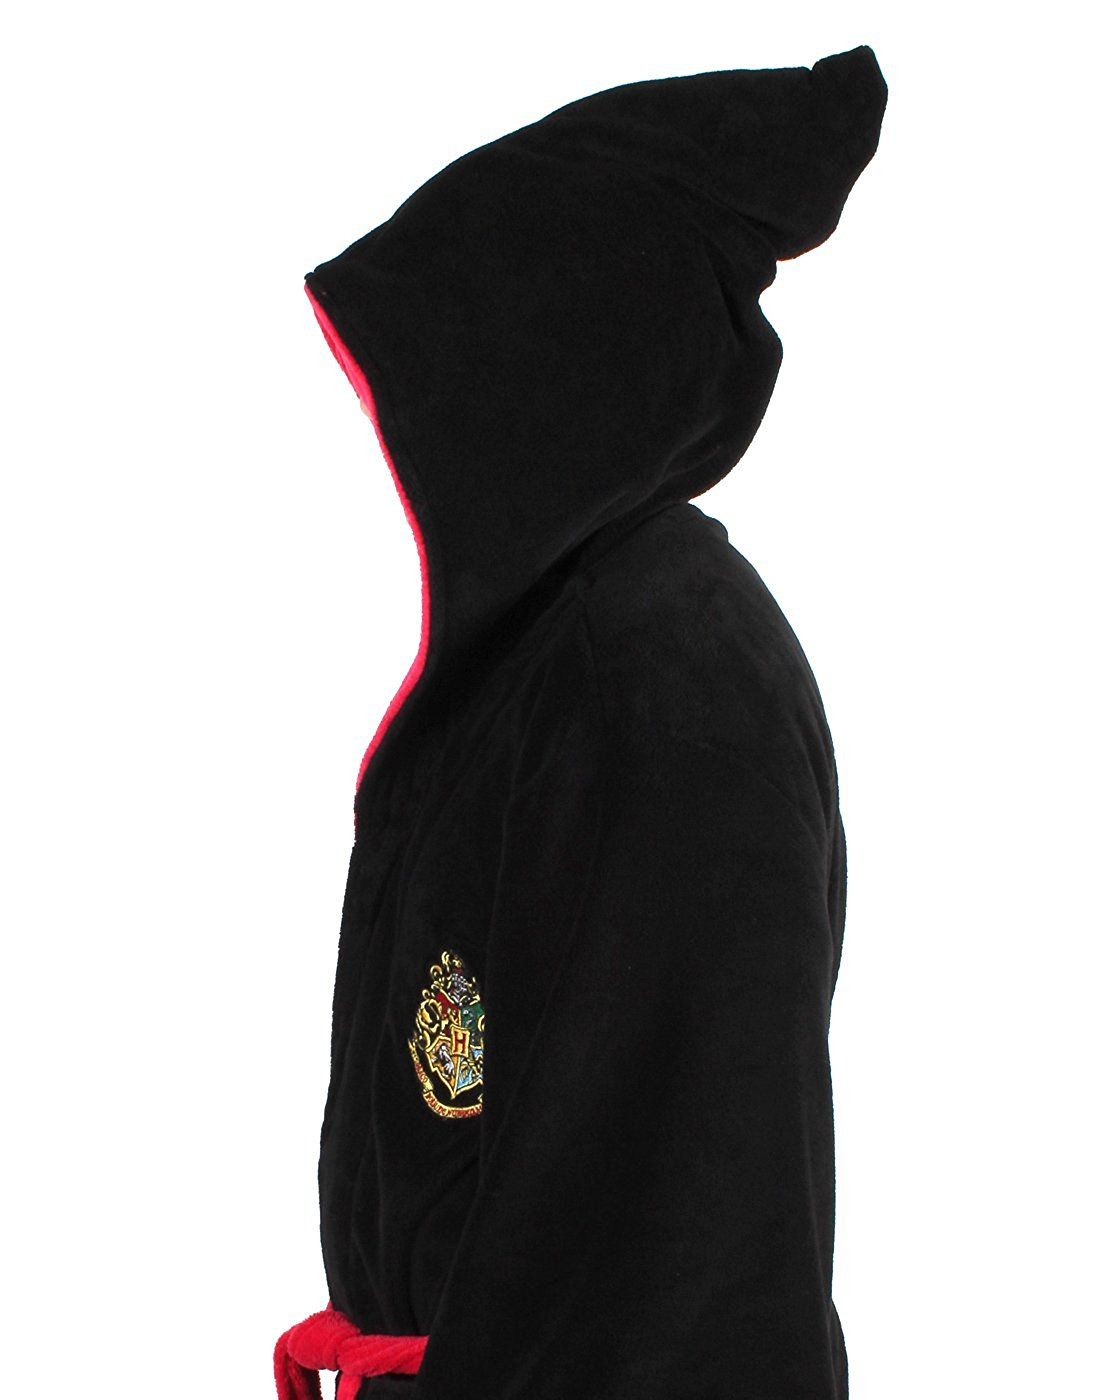 Harry-Potter-ALL-HOUSES-Adult-Fleece-Hooded-Bathrobe-One-Size miniature 9